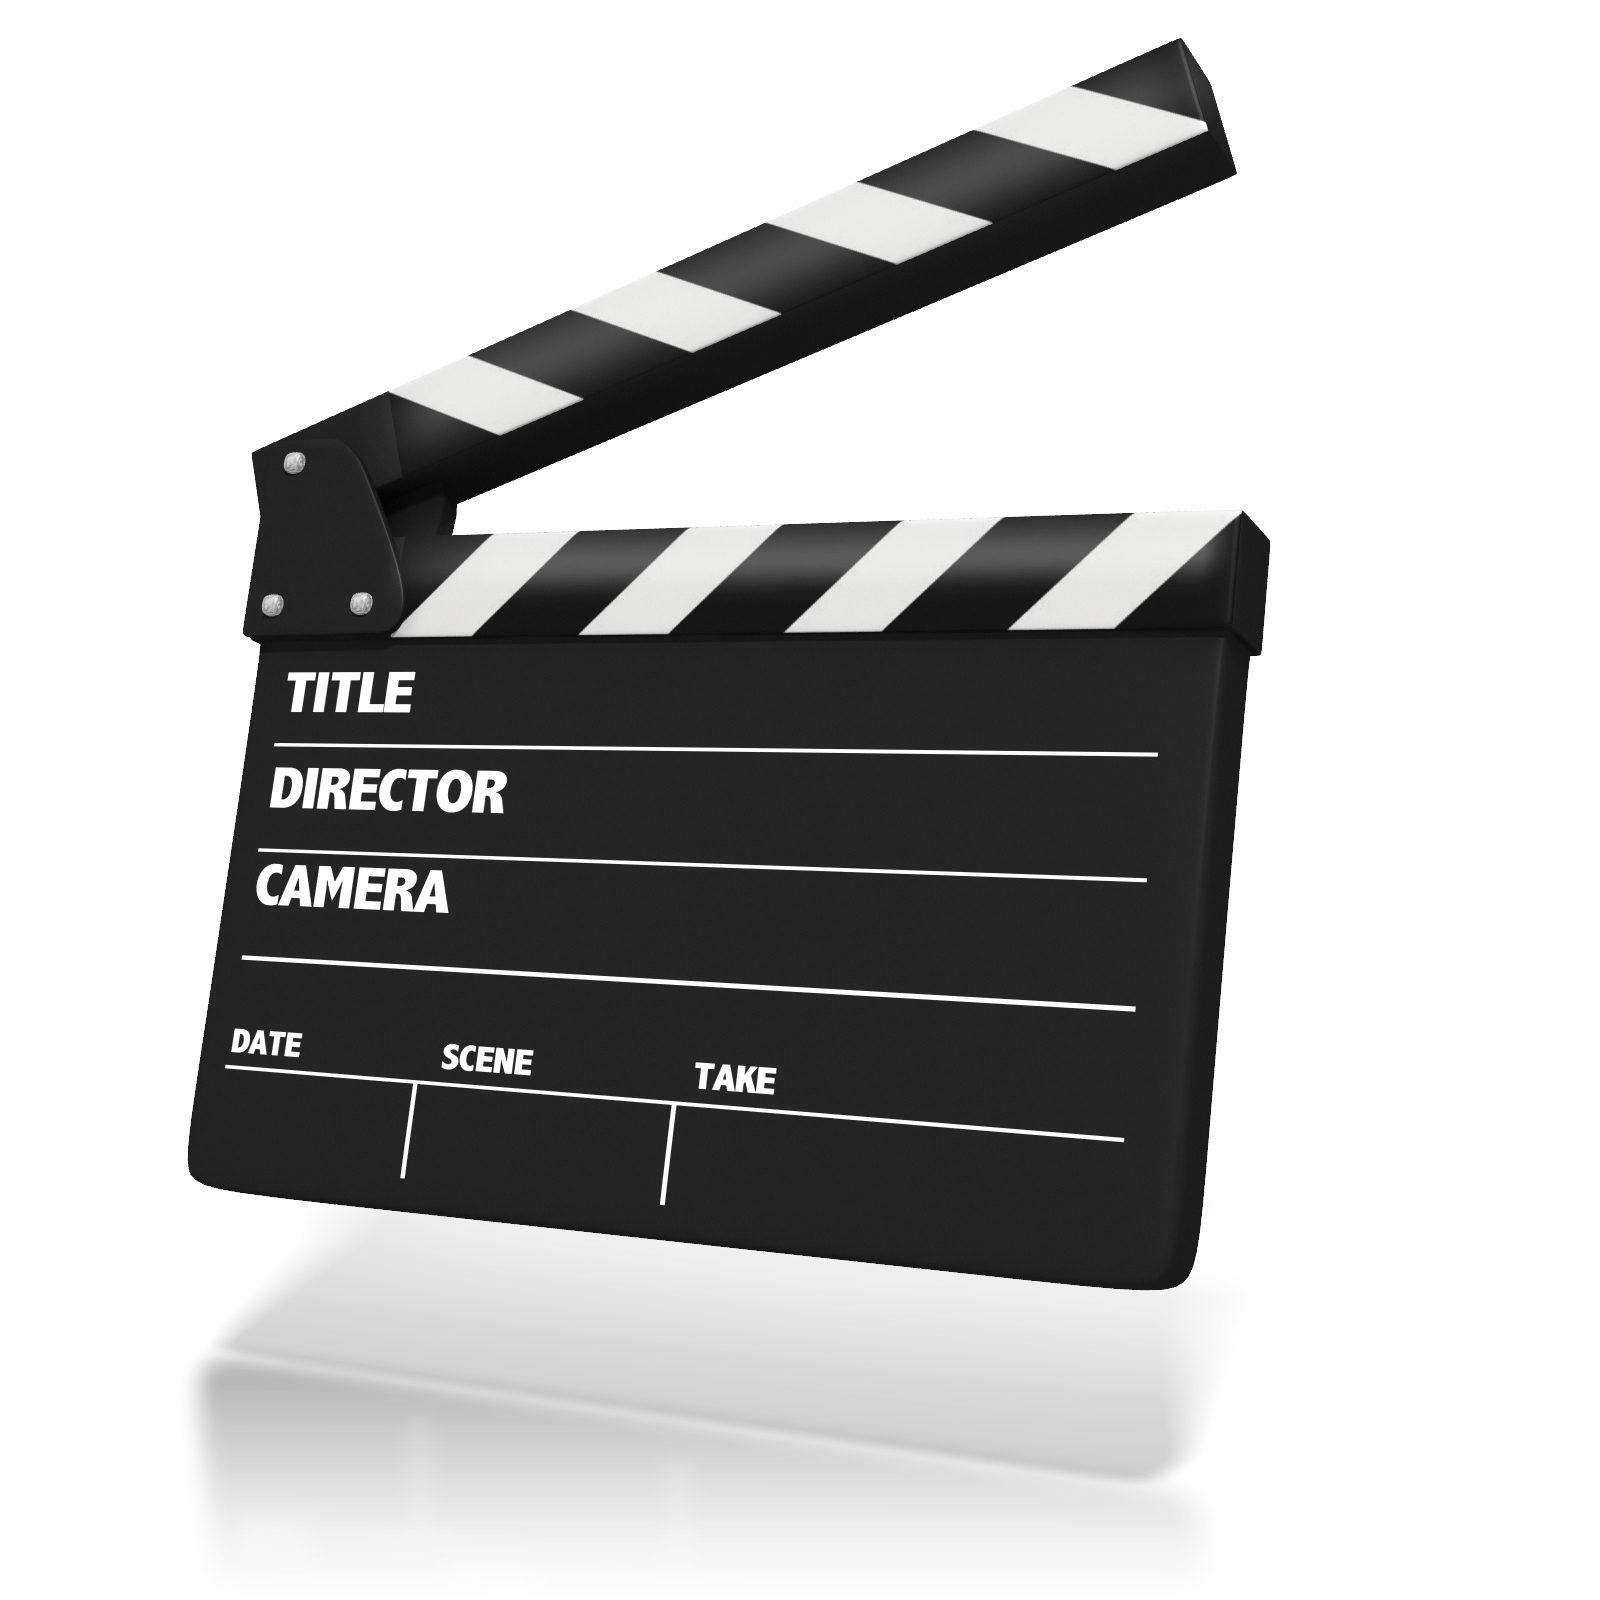 https://e-serial.fr/wp-content/uploads/2020/08/kisspng-clapperboard-animation-presentation-clapping-clip-movie-theatre-5ab8ef37f26f56.826720561522069303993.png